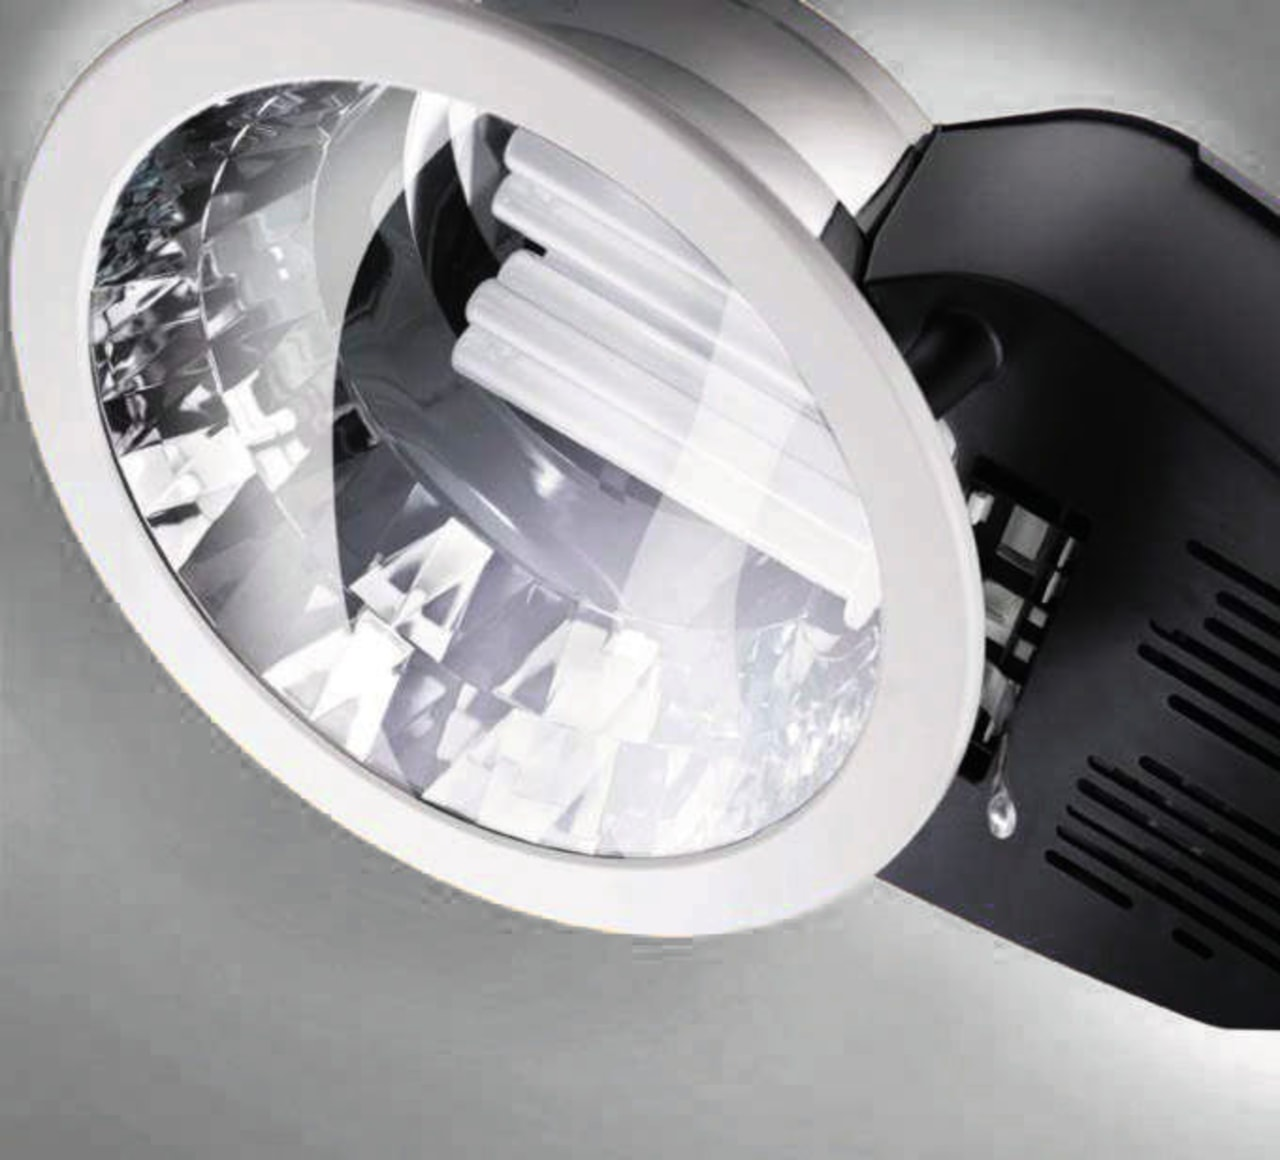 Close view of the Philips Europa2 downlight automotive lighting, lighting, product design, white, gray